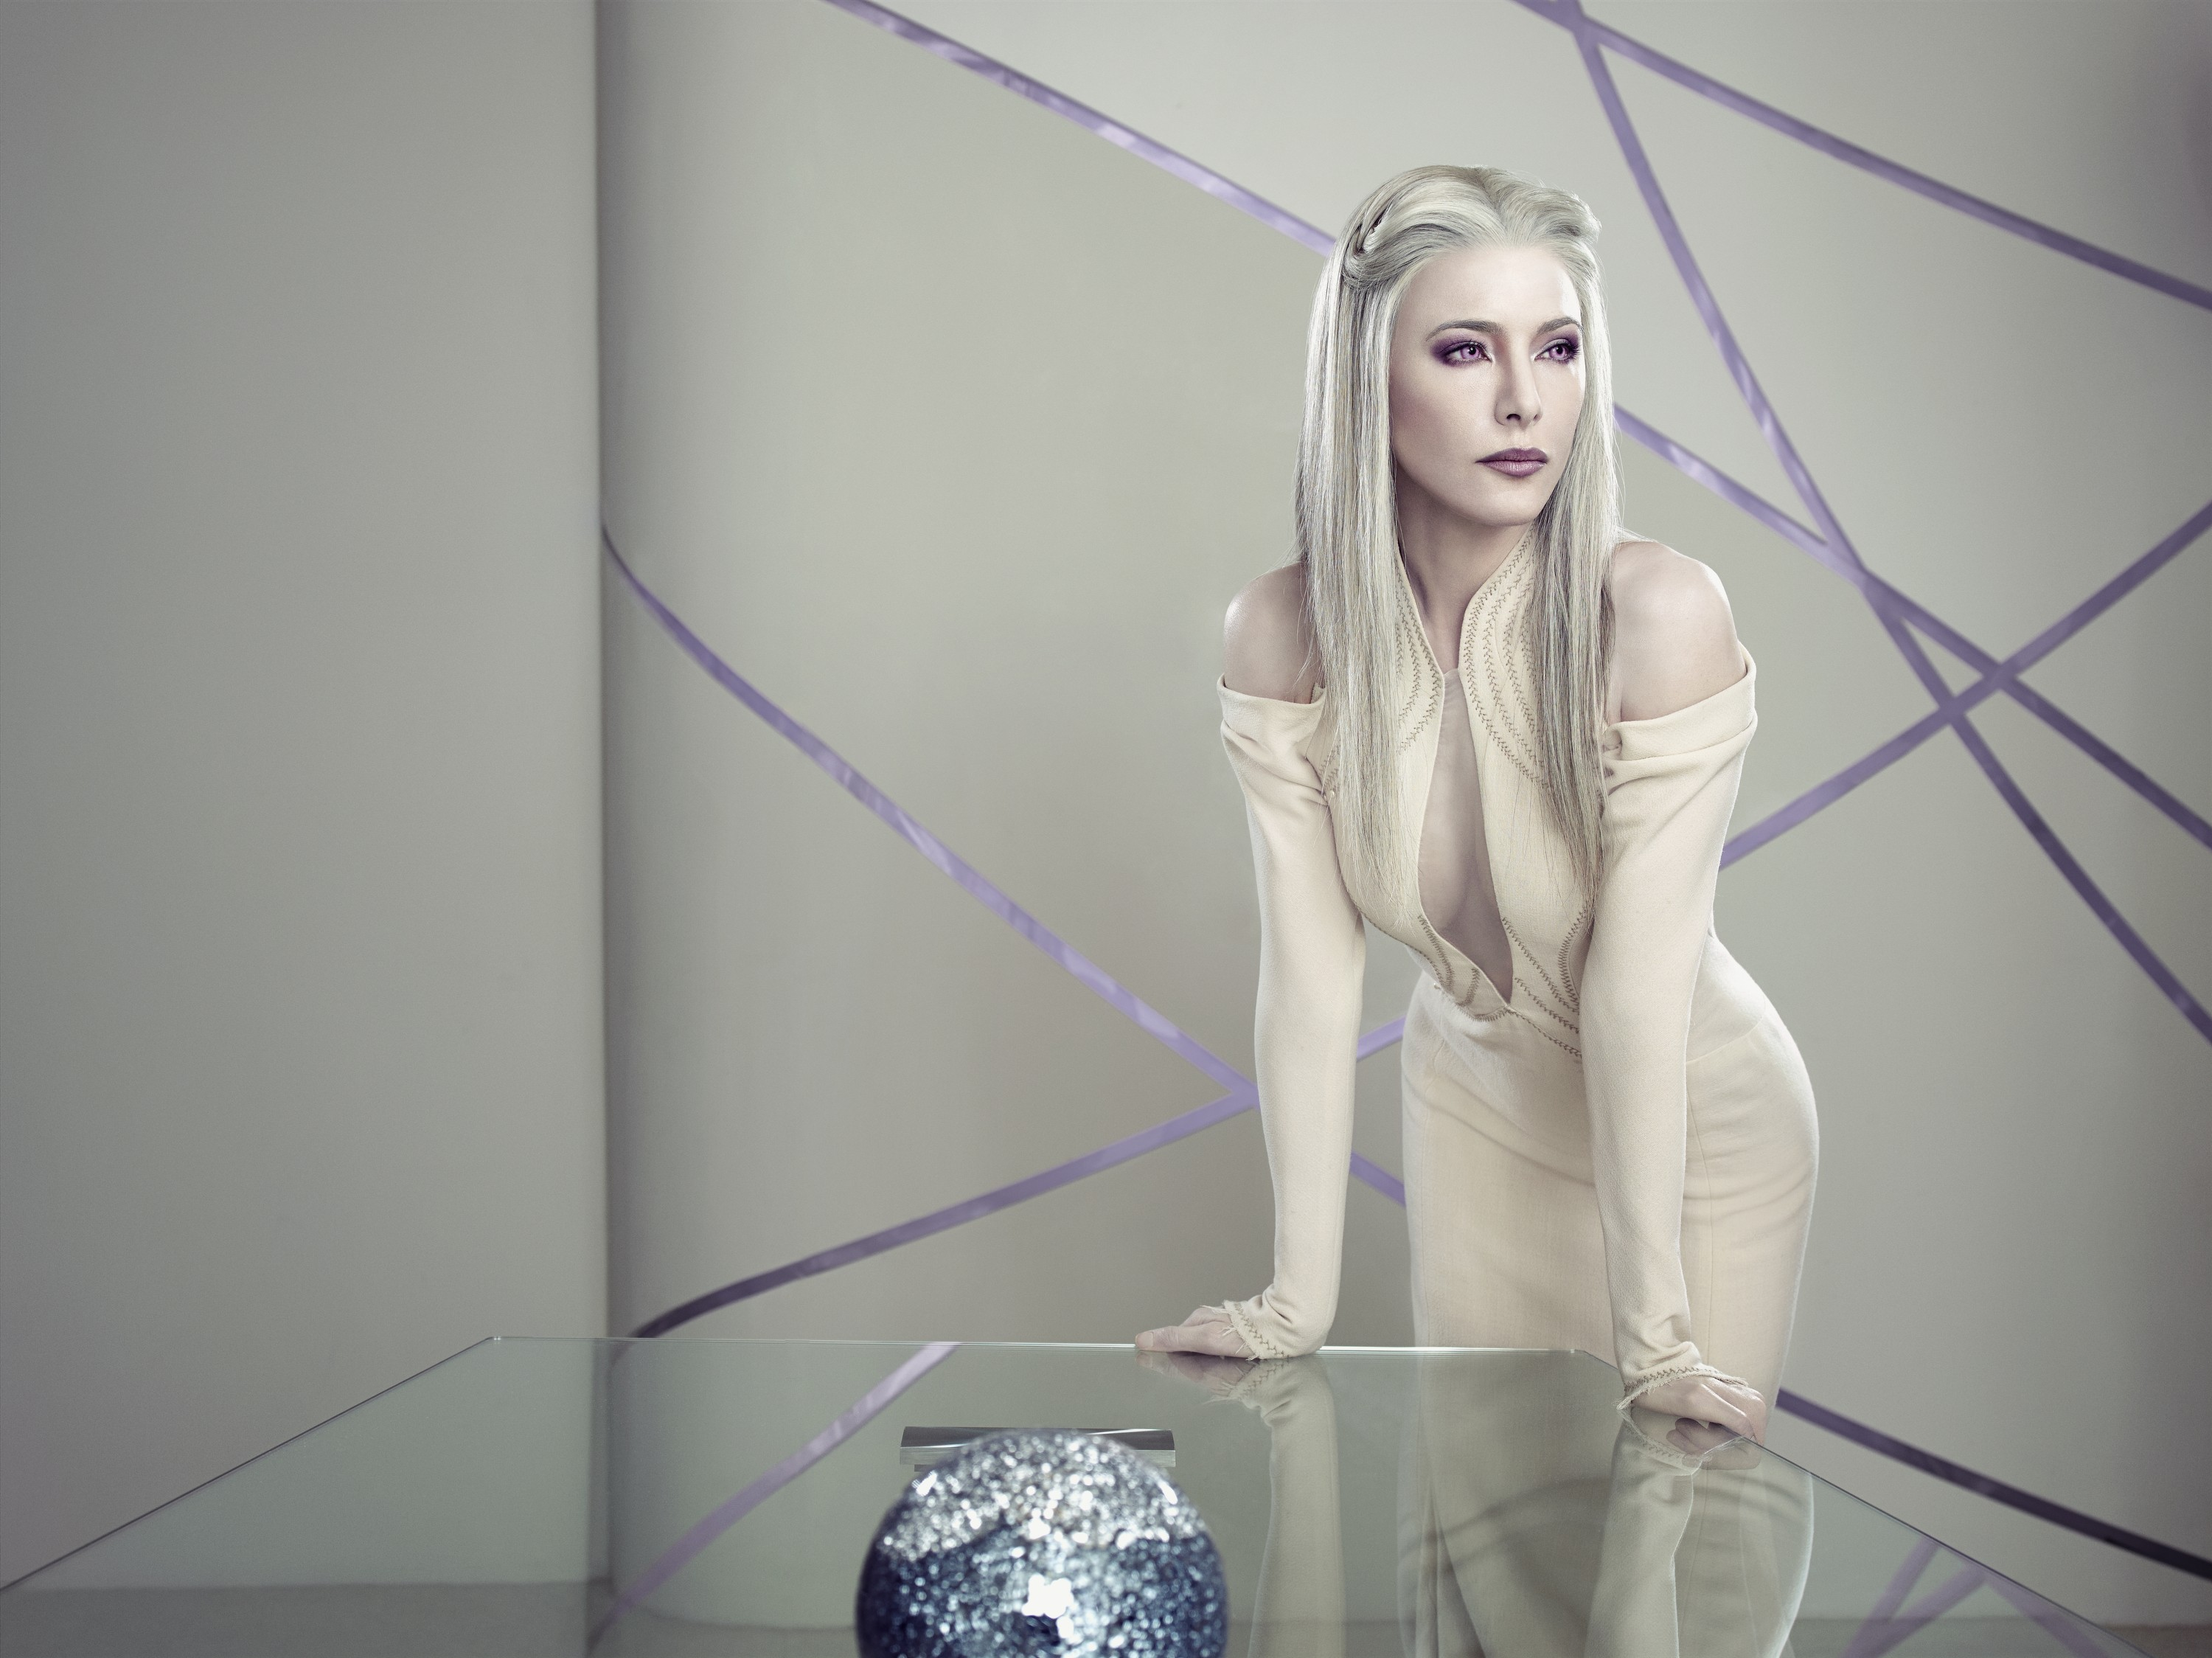 Defiance season 2 Jaime Murray as Stahma Tarr sexy